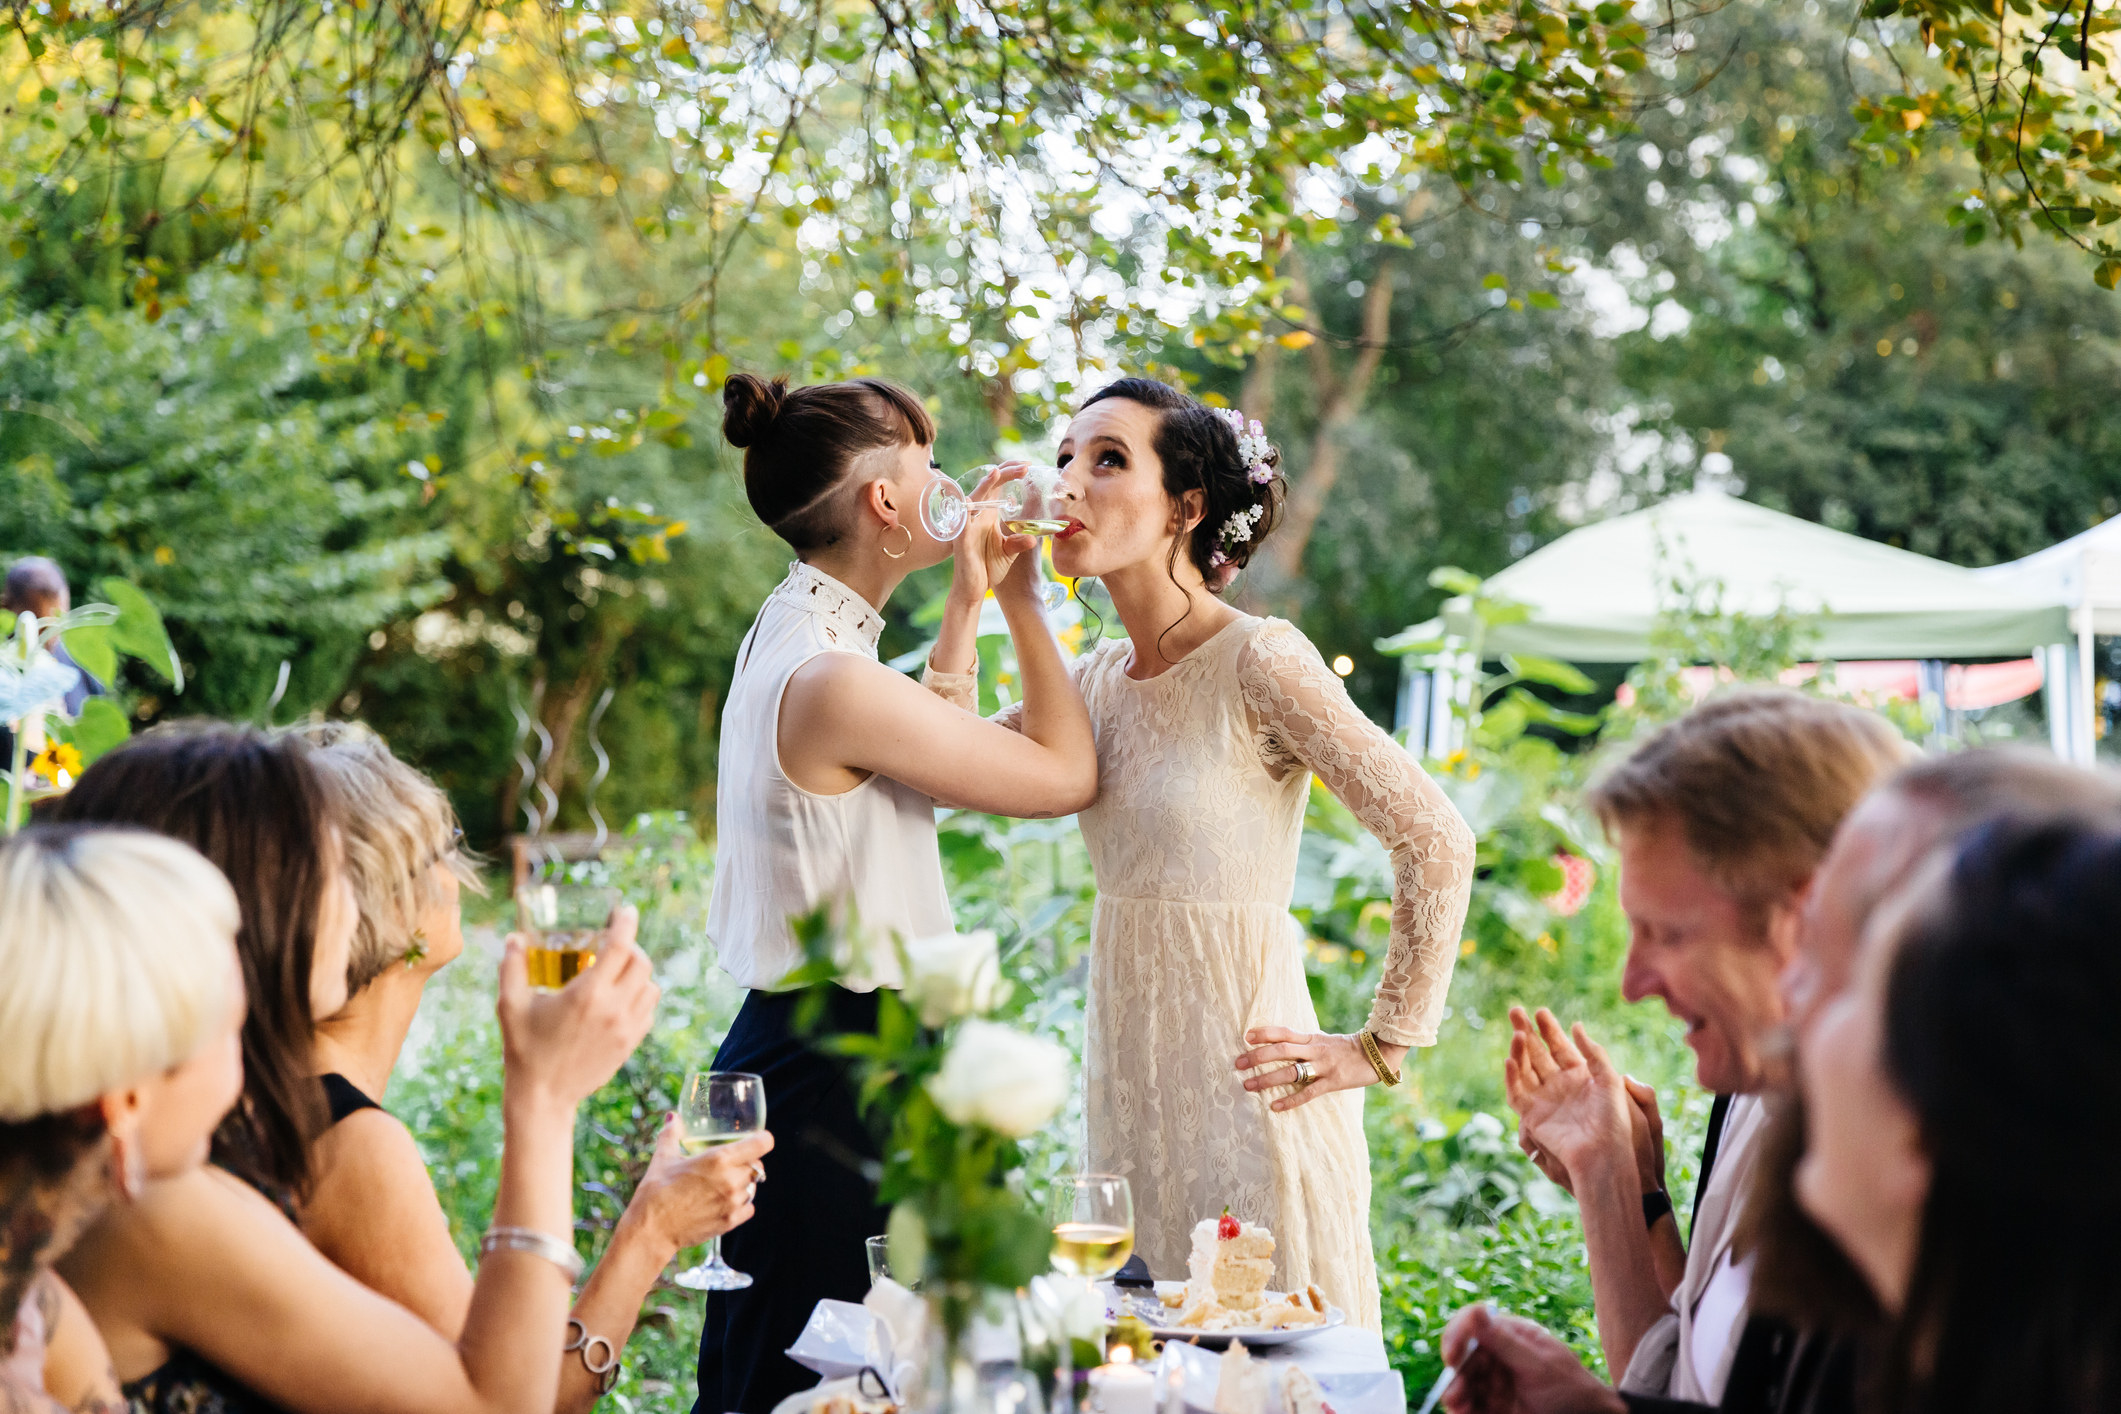 Two people sipping from glasses with their arms intertwined at a wedding